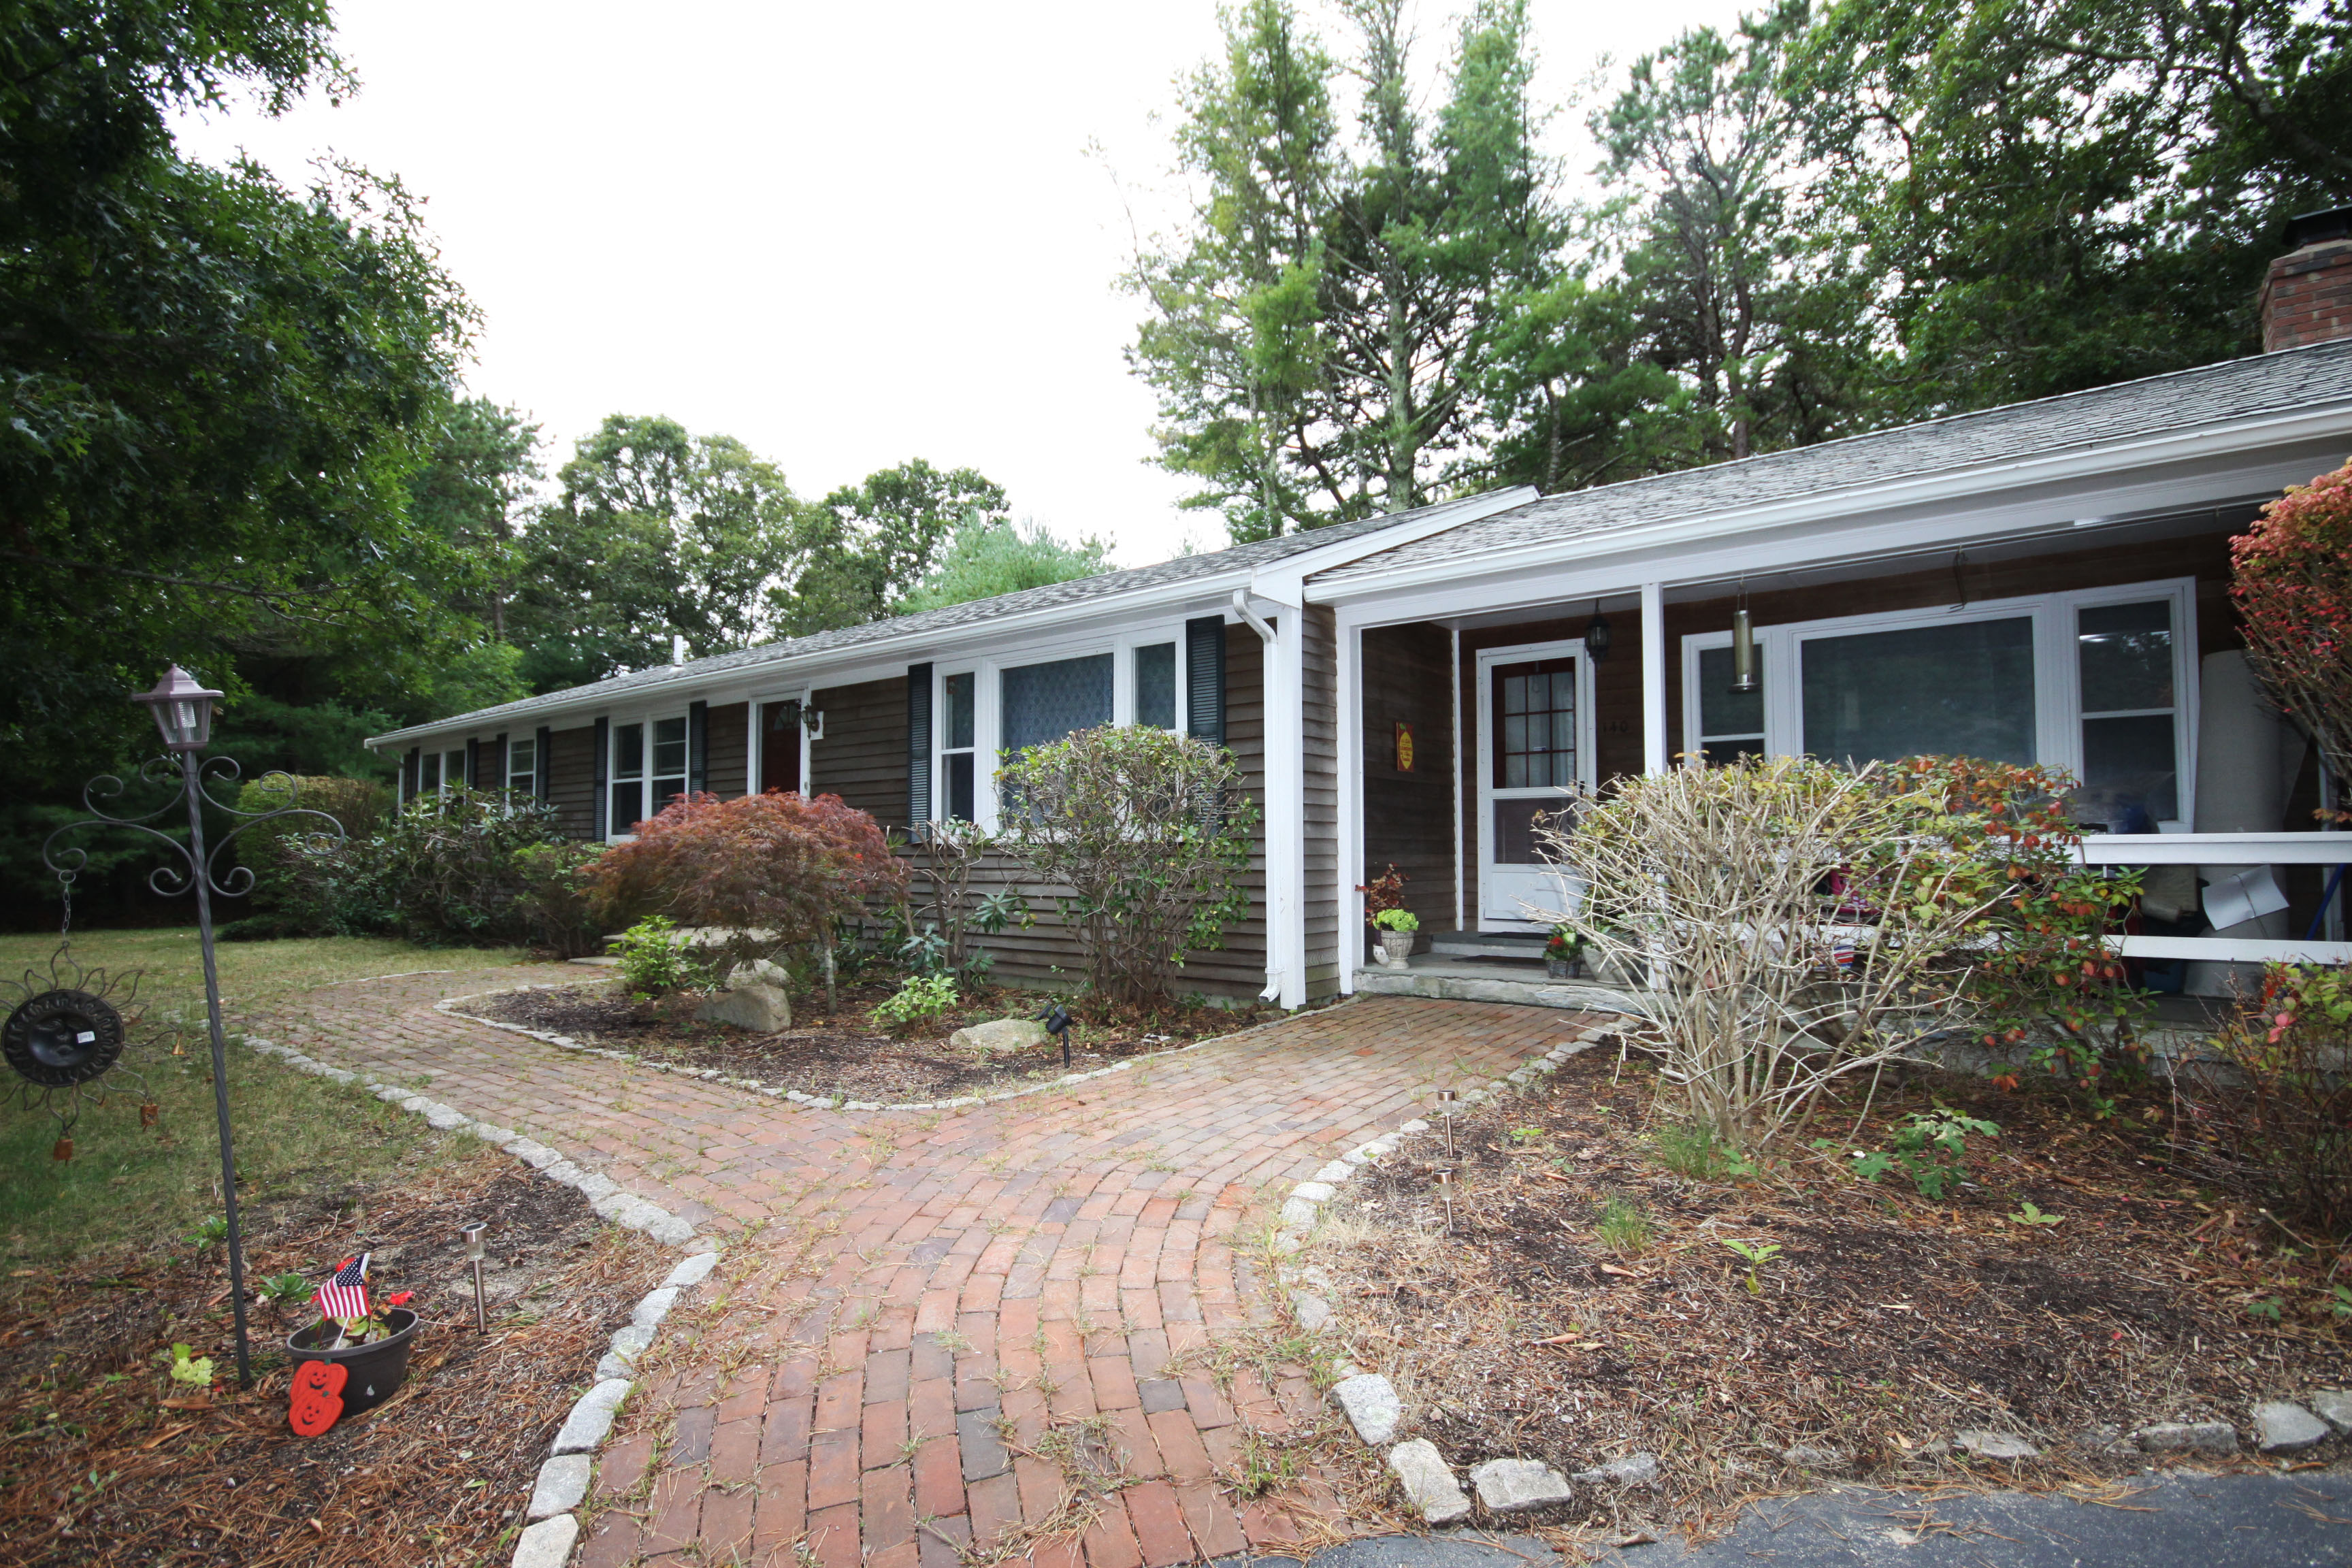 Single Family Home for Sale at FAMILY NEIGHBORHOOD 140 Cap'n Samadrus Road Cotuit, Massachusetts 02635 United States